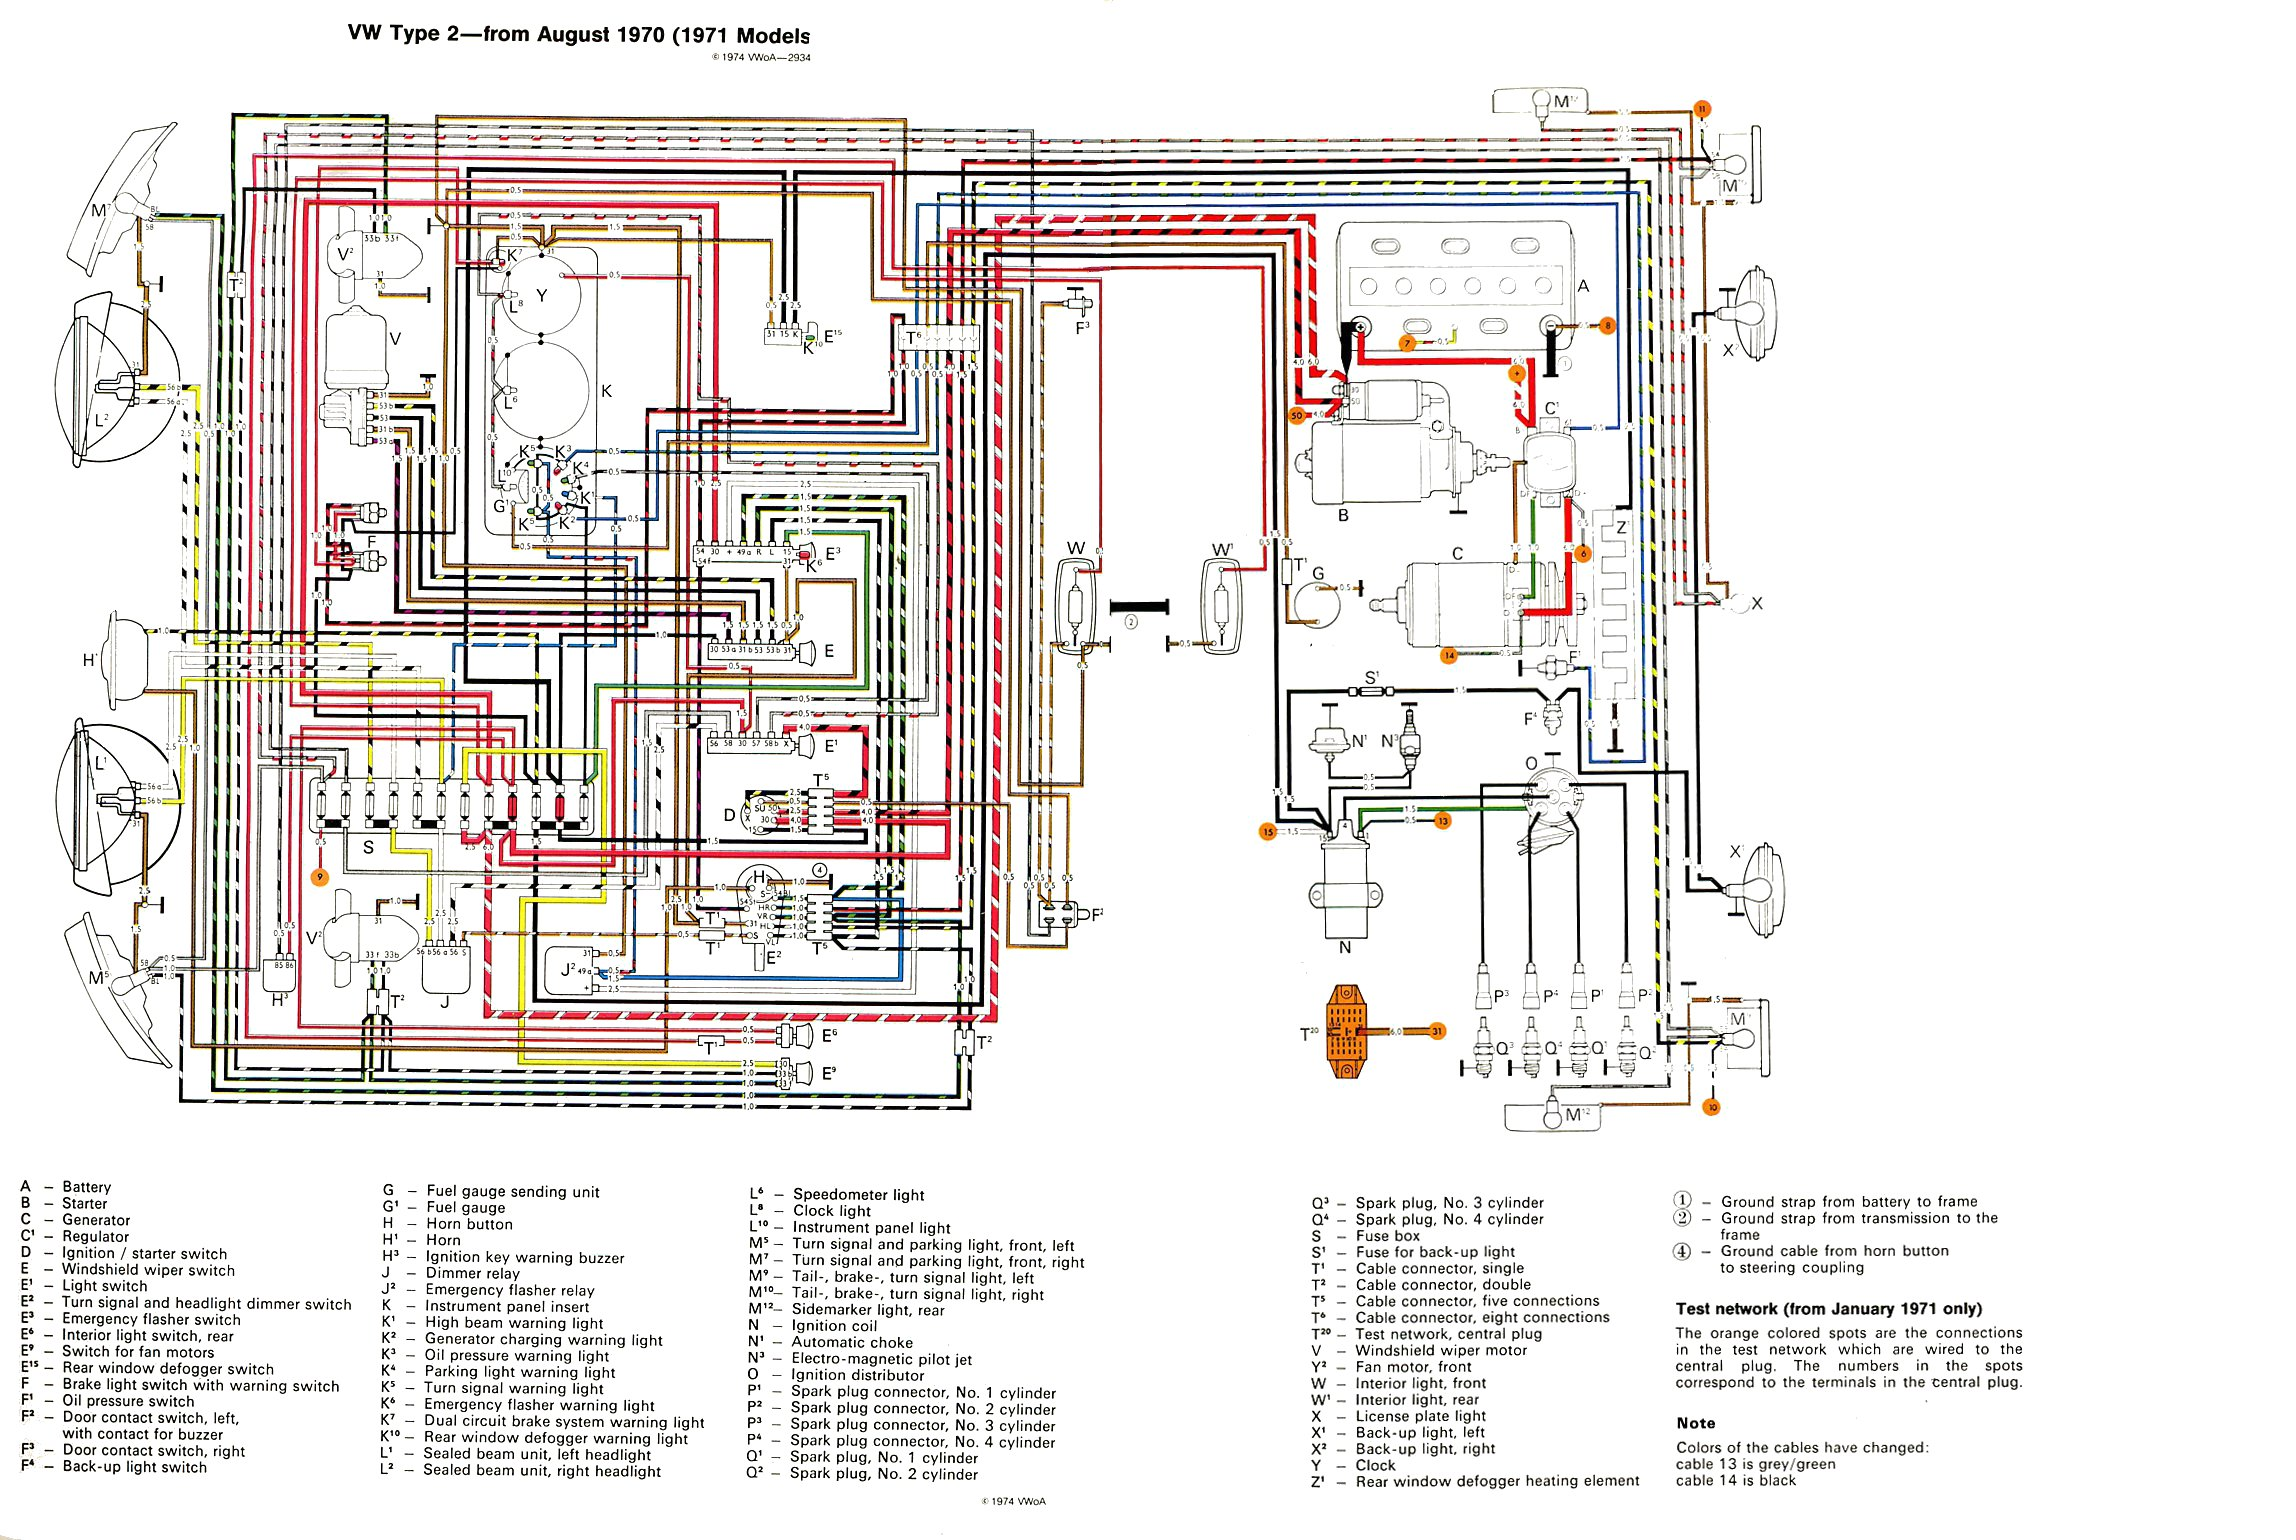 baybus_71 71 vw bus wiring diagram 1970 vw bus fuse box diagram \u2022 wiring Wiring Harness Diagram at metegol.co